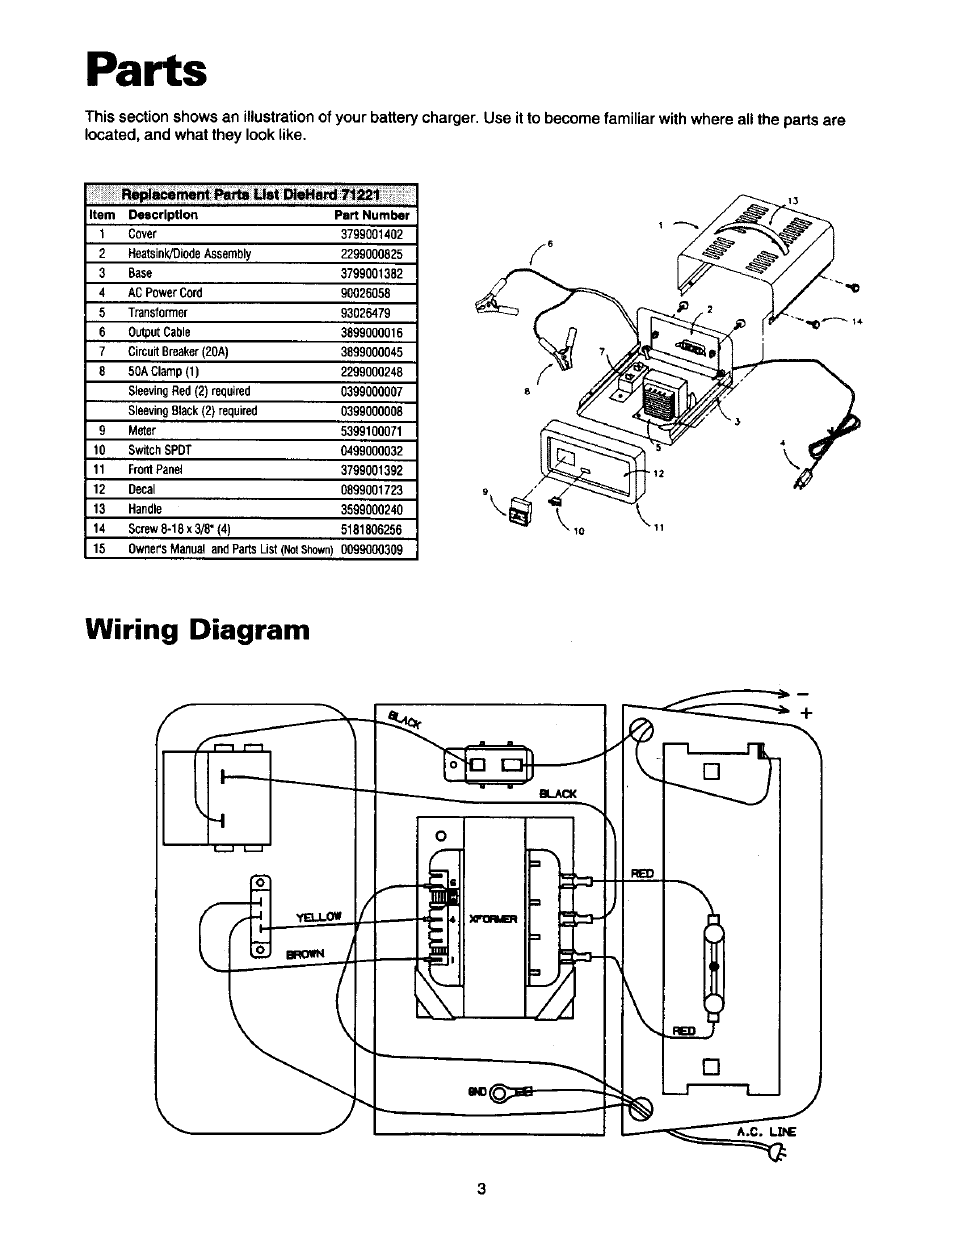 200 amp disconnect wiring diagram  200  electrical wiring